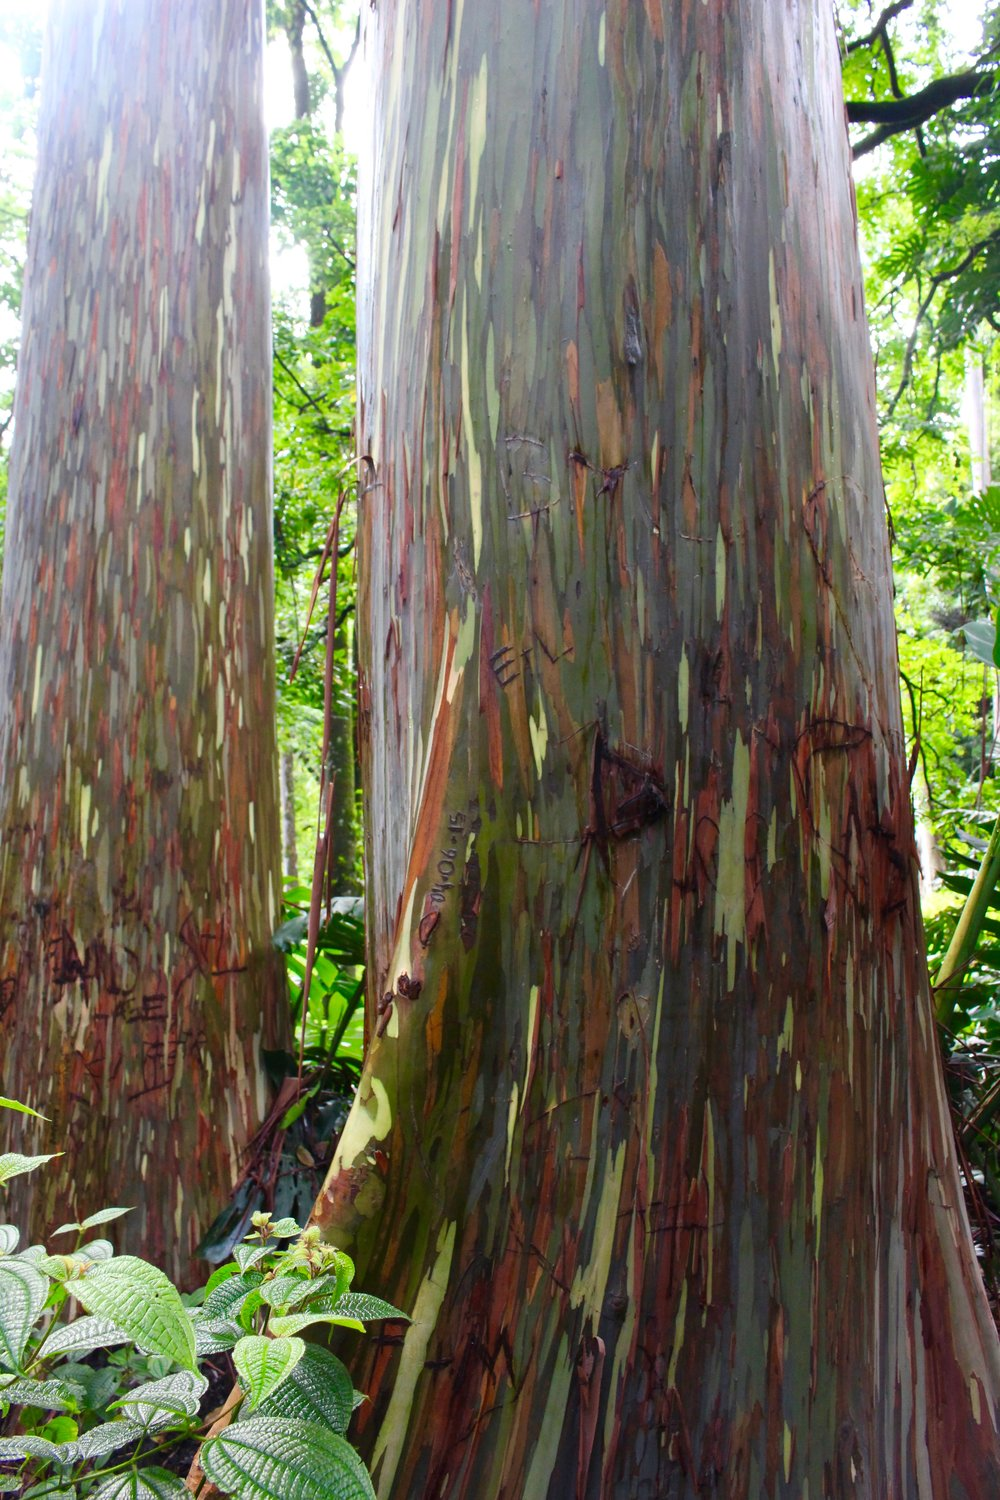 These rainbow eucalyptus trees are all natural! The bark sheds at different times, starting at a bright green and slowly changing to an array of rainbow colors.